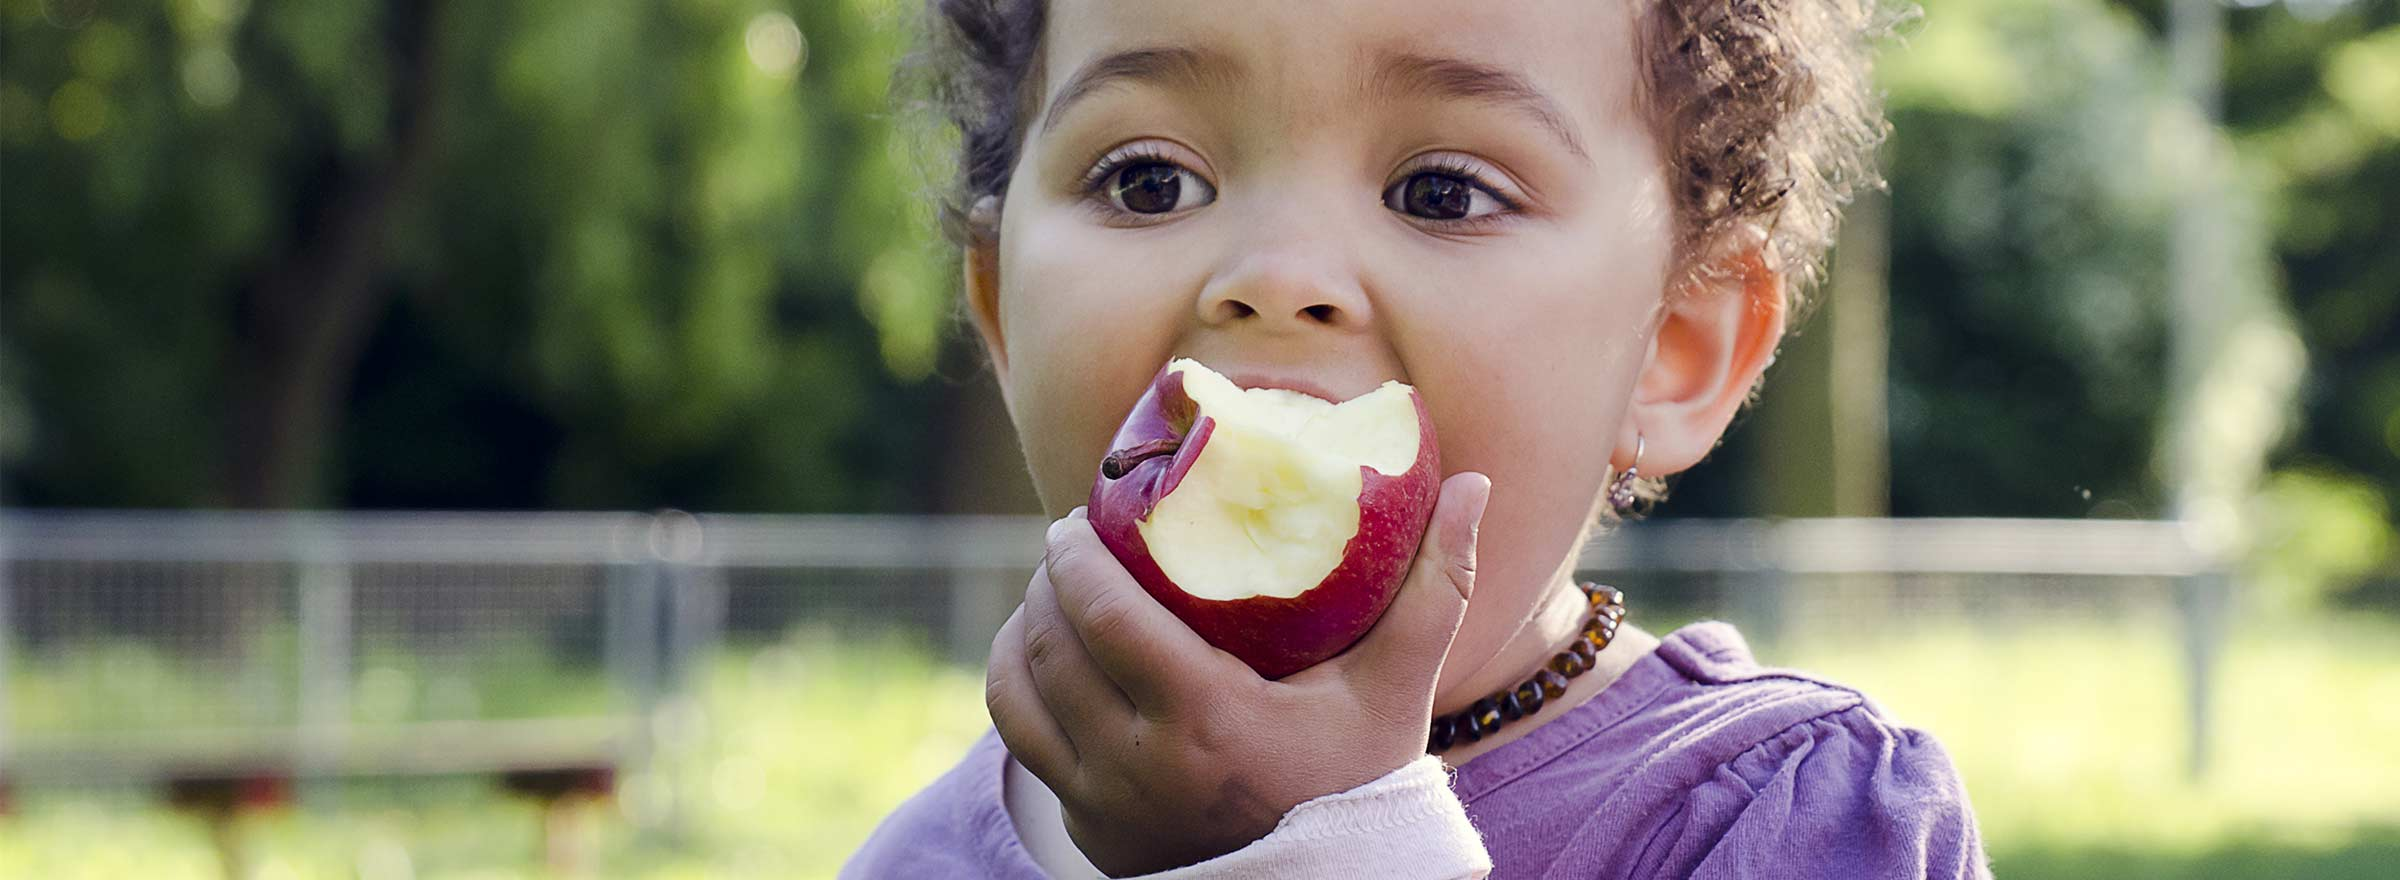 small child eating an apple